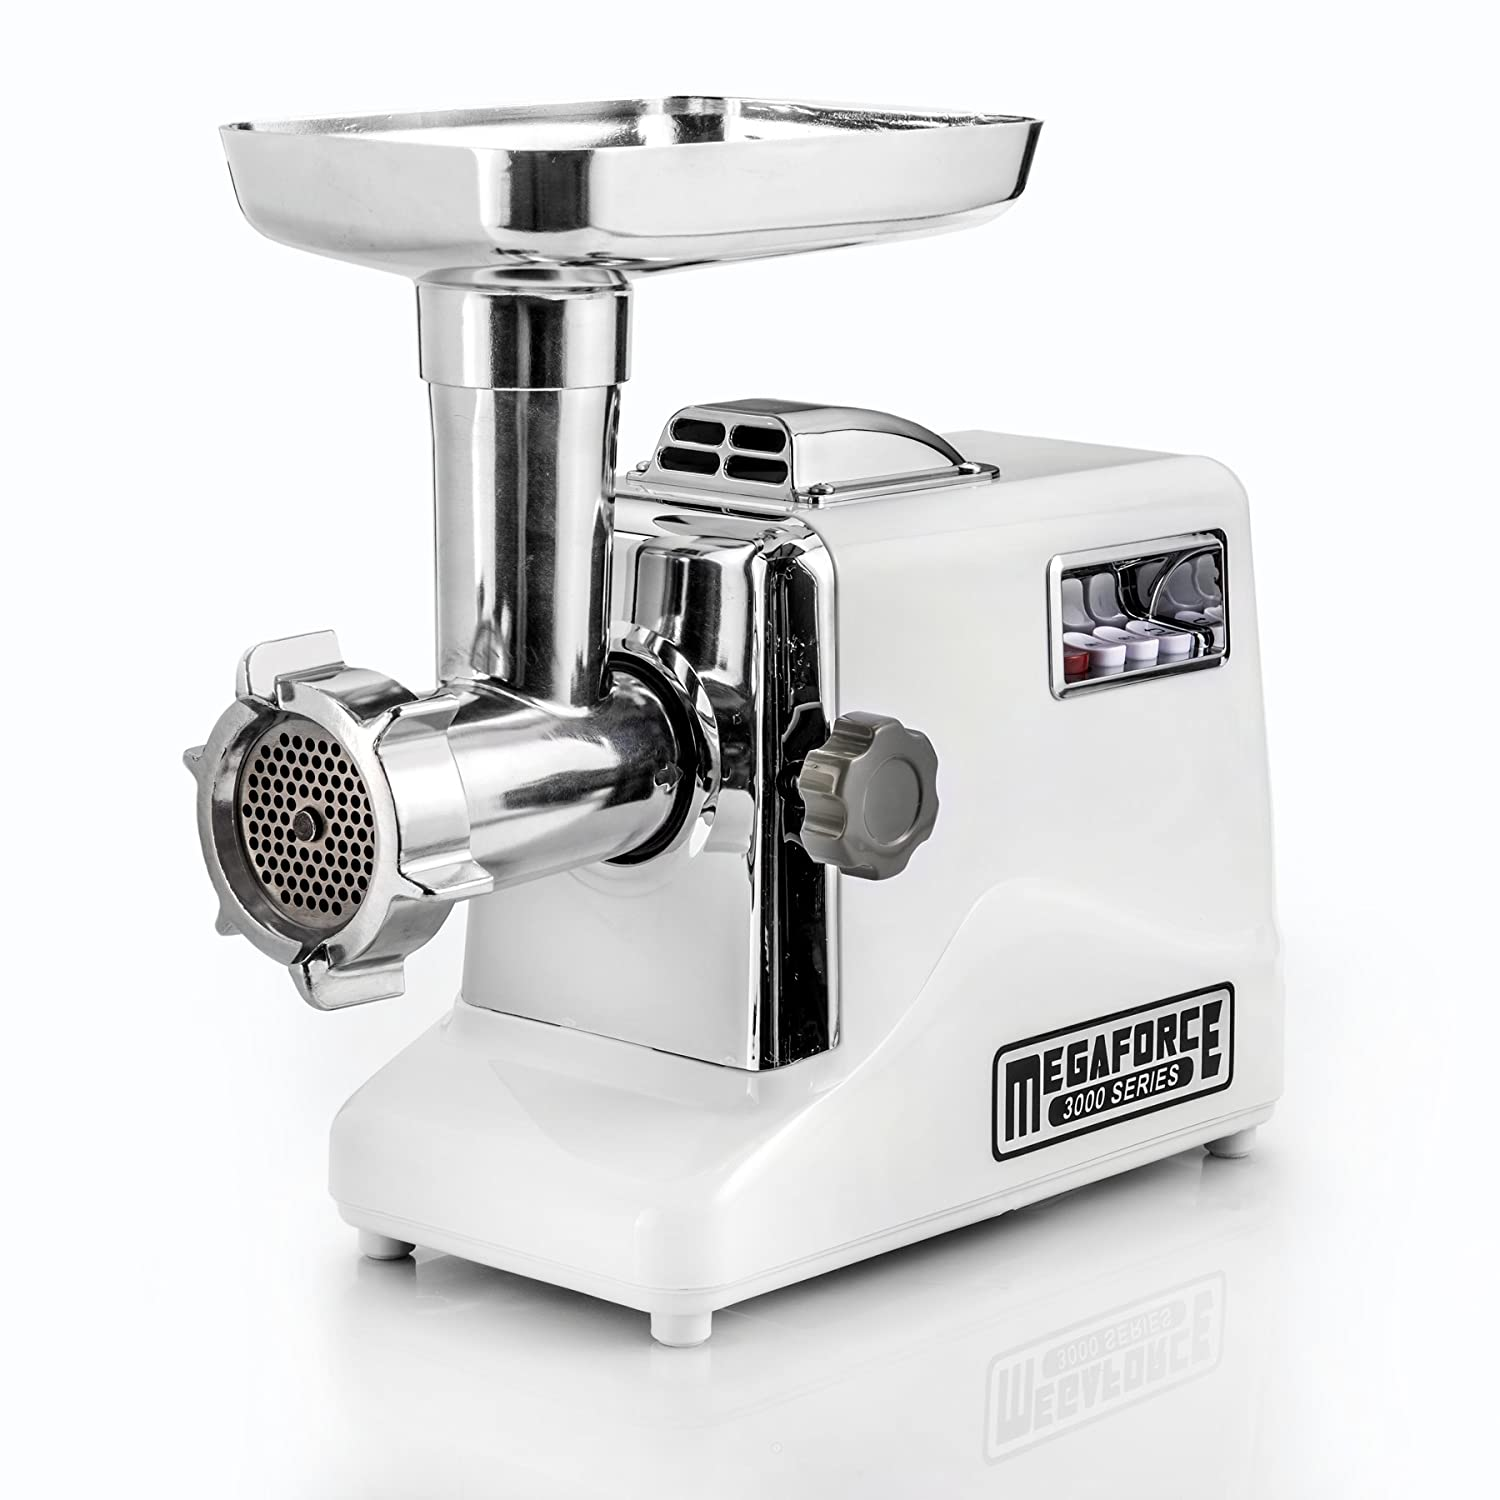 Stx megaforce 3000 series with patent pending - cowl air induction cooling system - 3000 watt peak output power - 3 speed - electric meat grinder